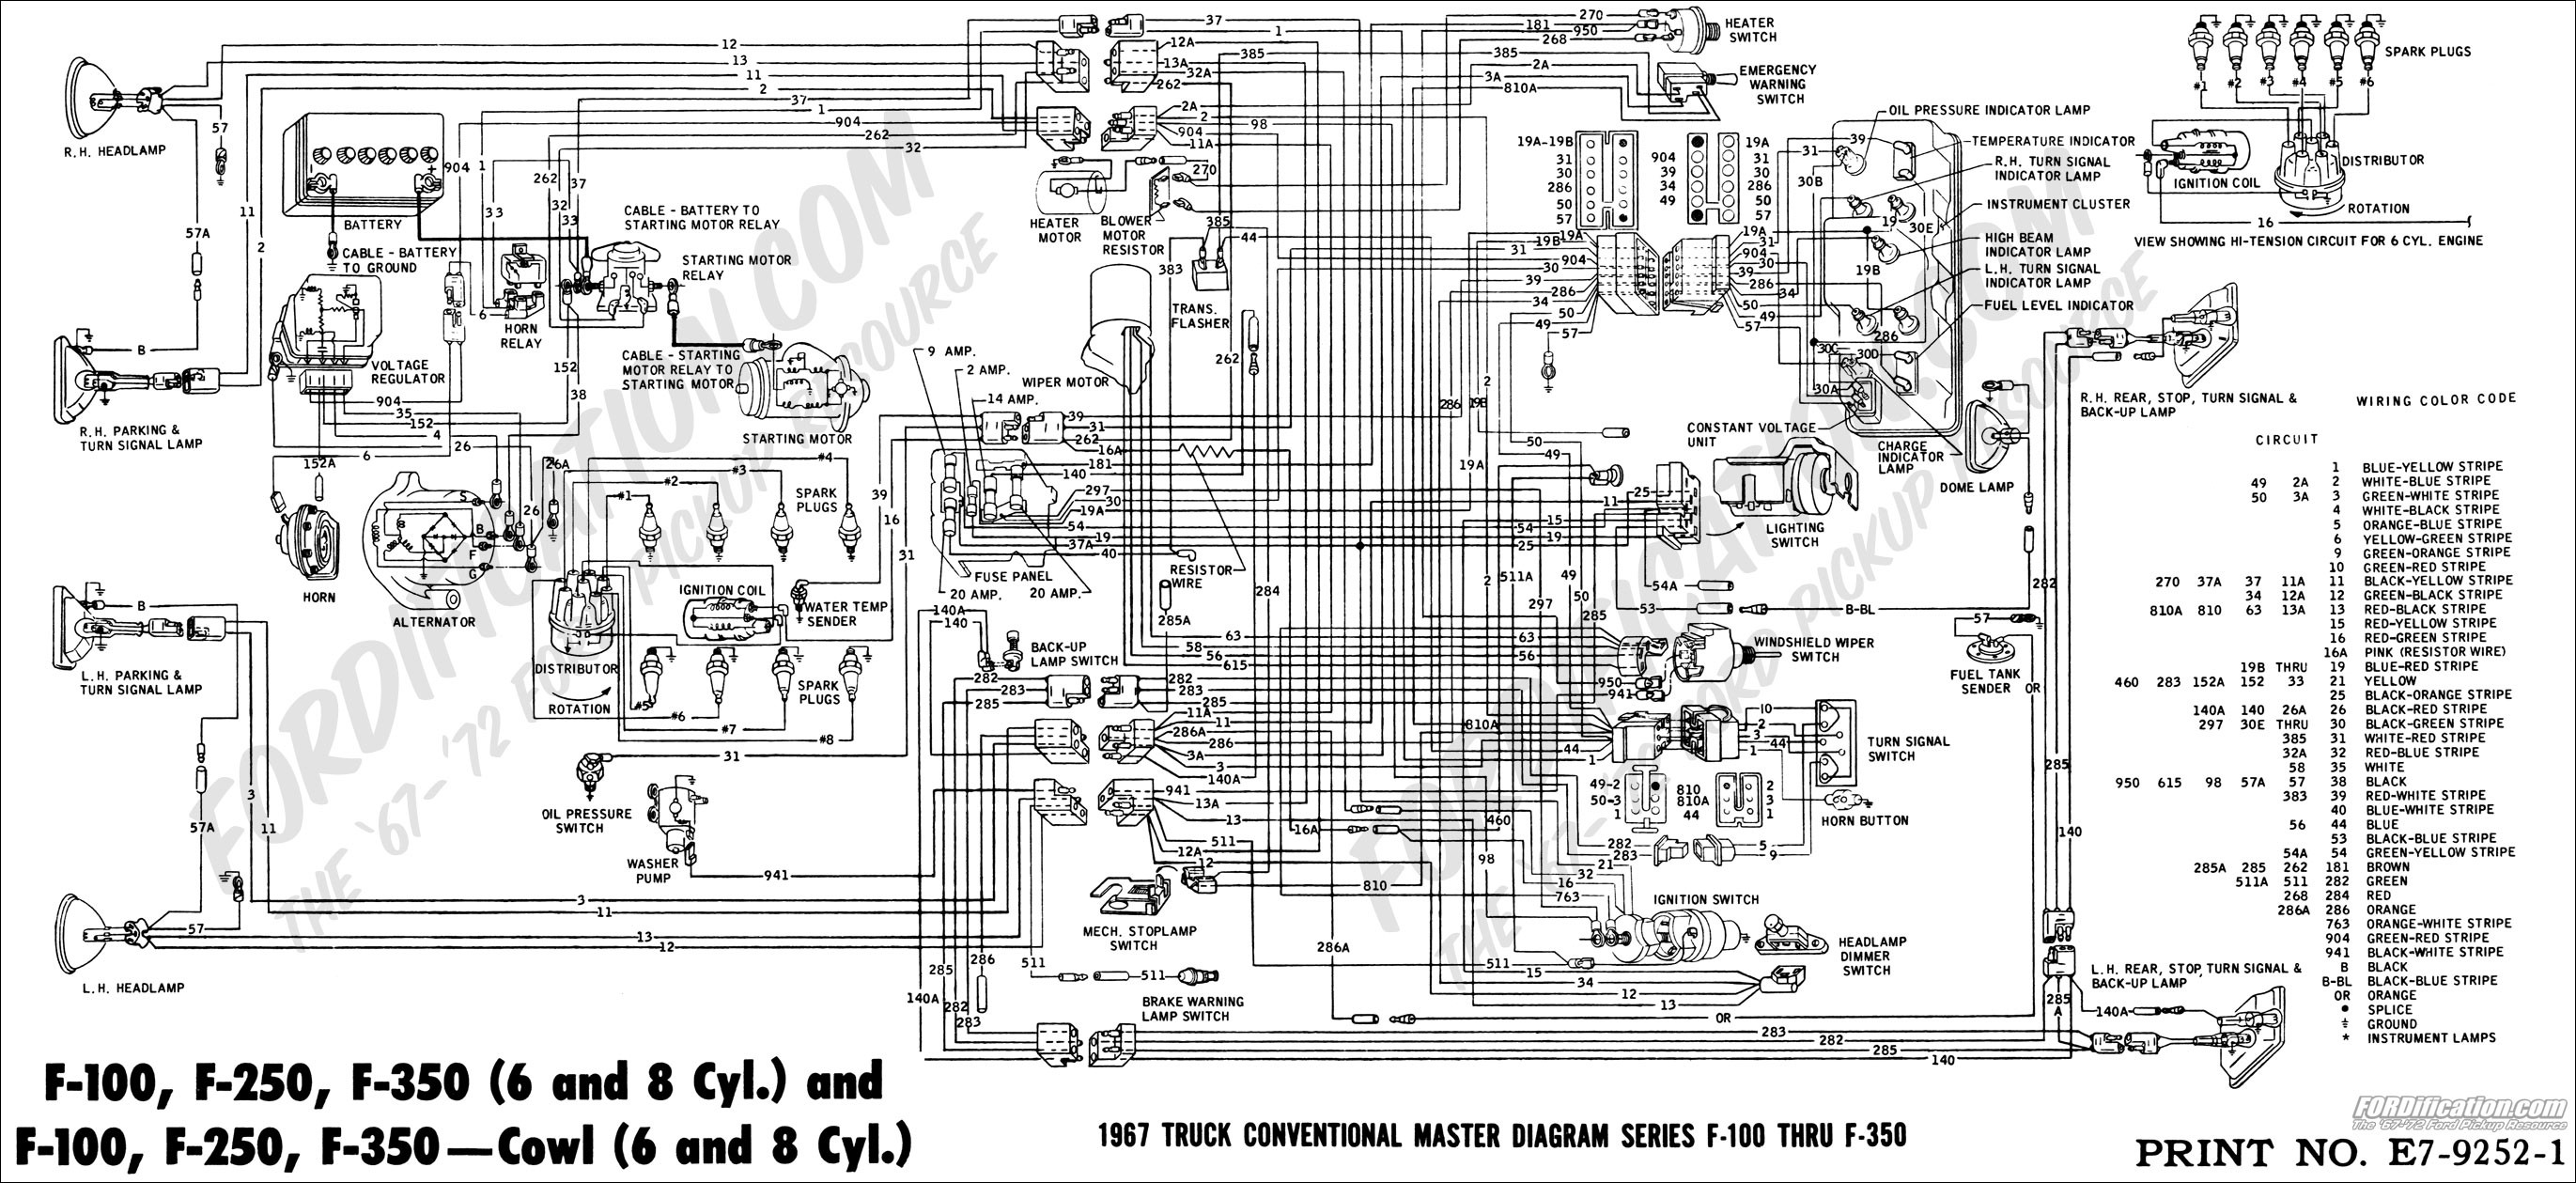 2007 Ford Mustang Wiring Diagram Ranger Schematics Canopi Of